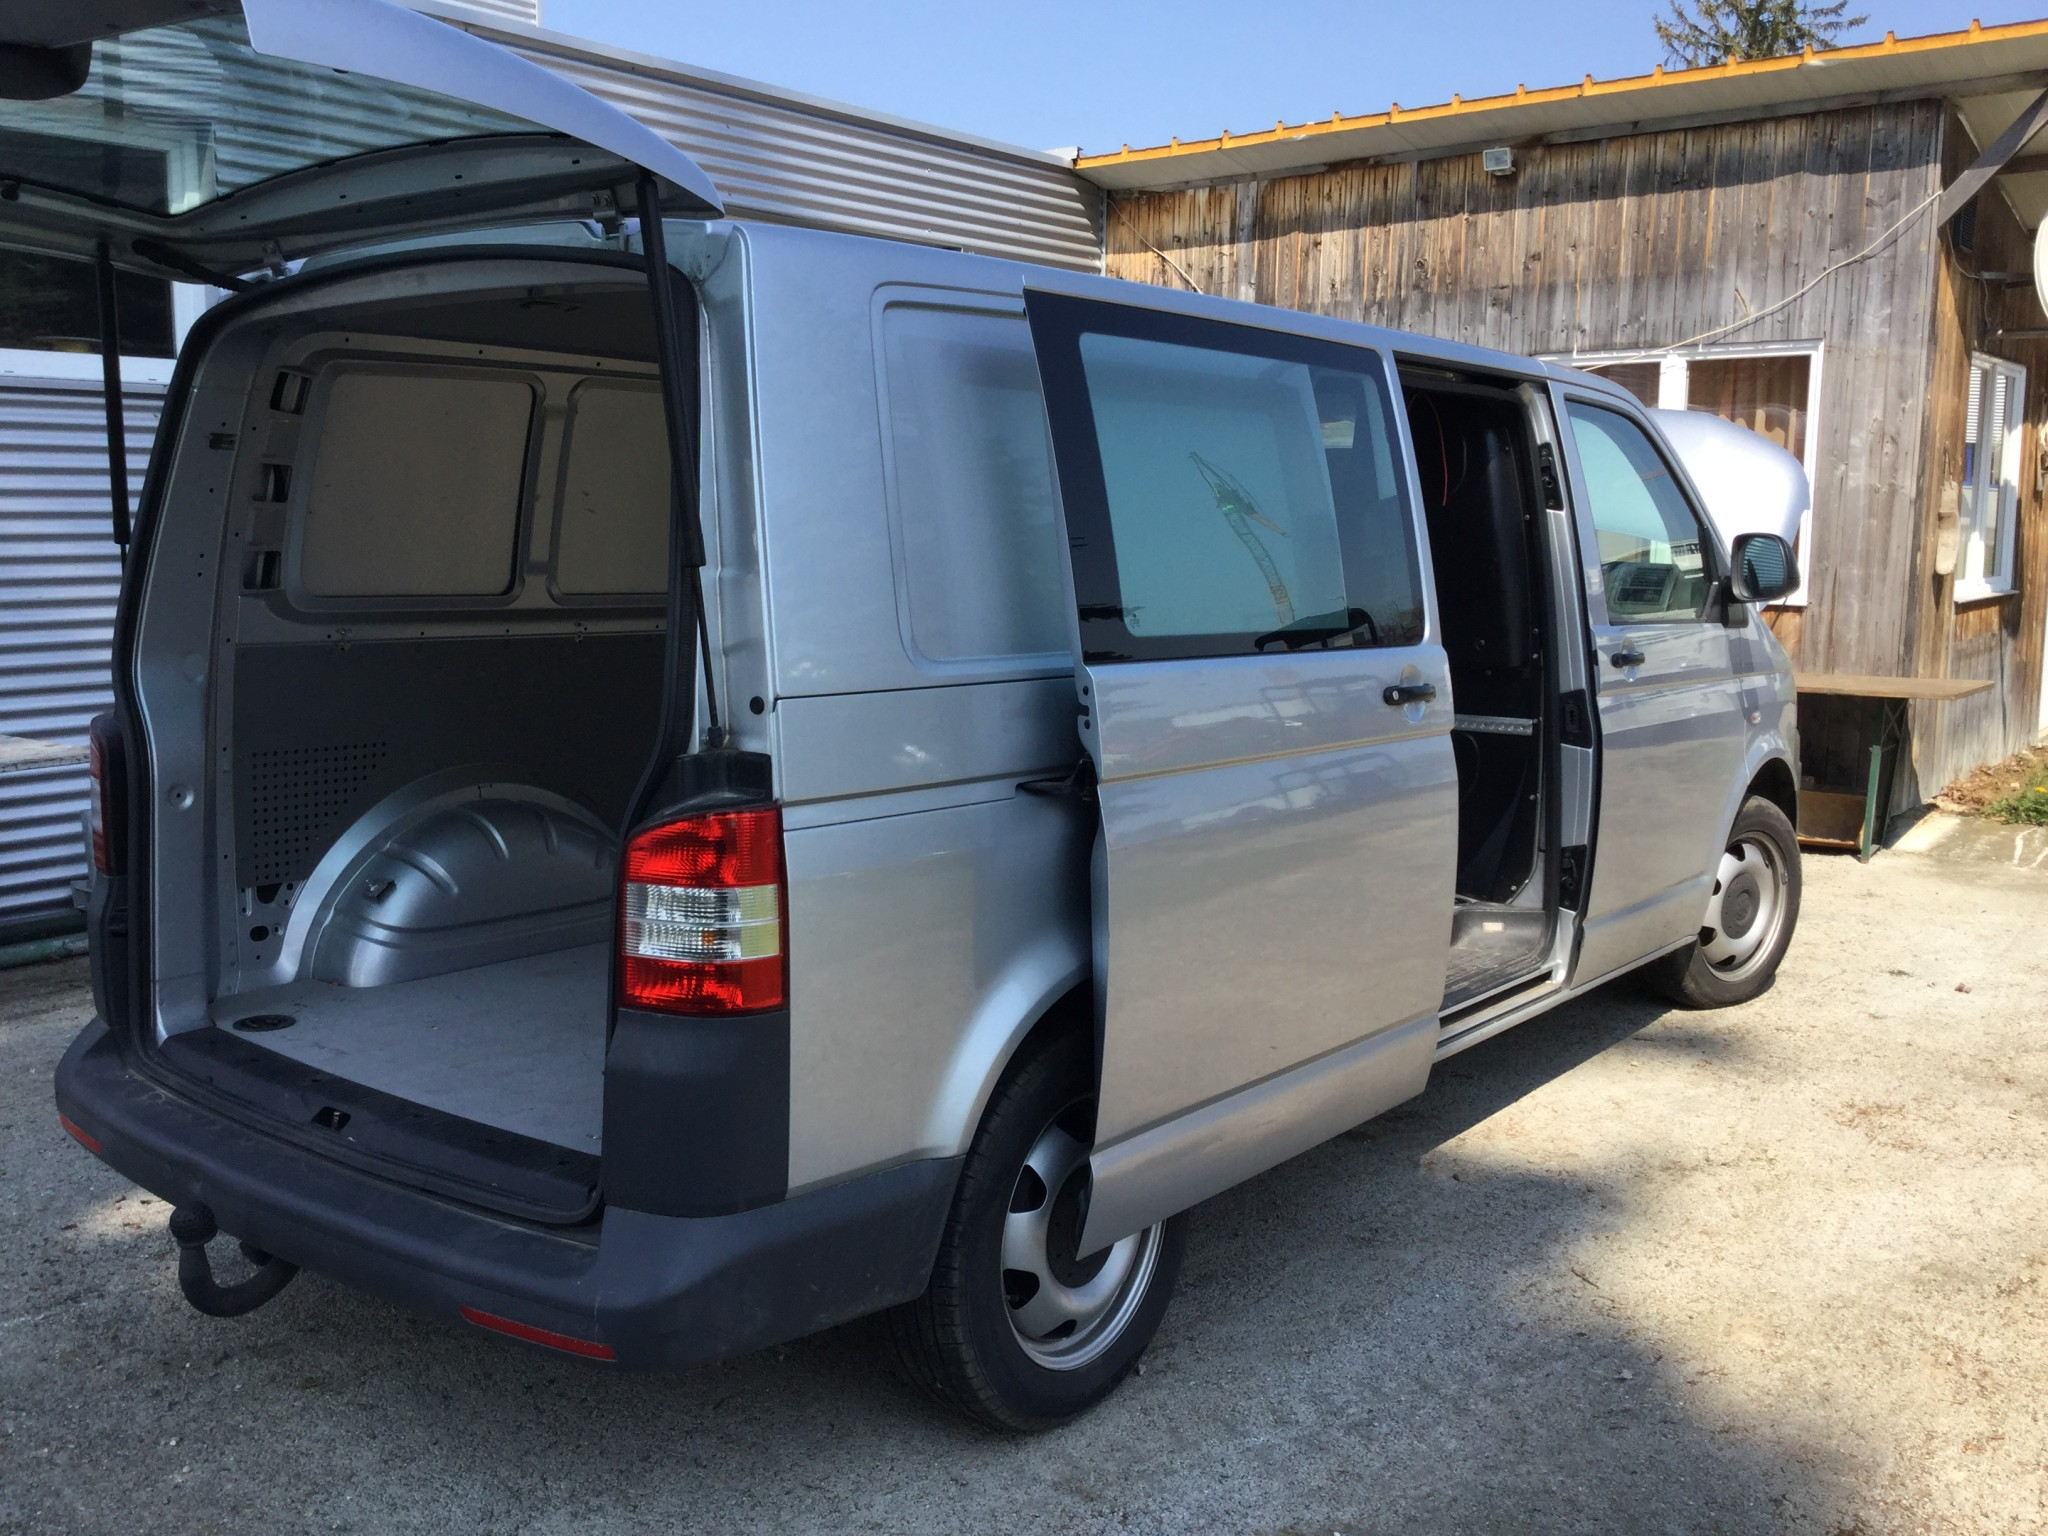 bus VW T5 2.0 Bi-TDI 4Motion DSG Preisreduktion!!!!